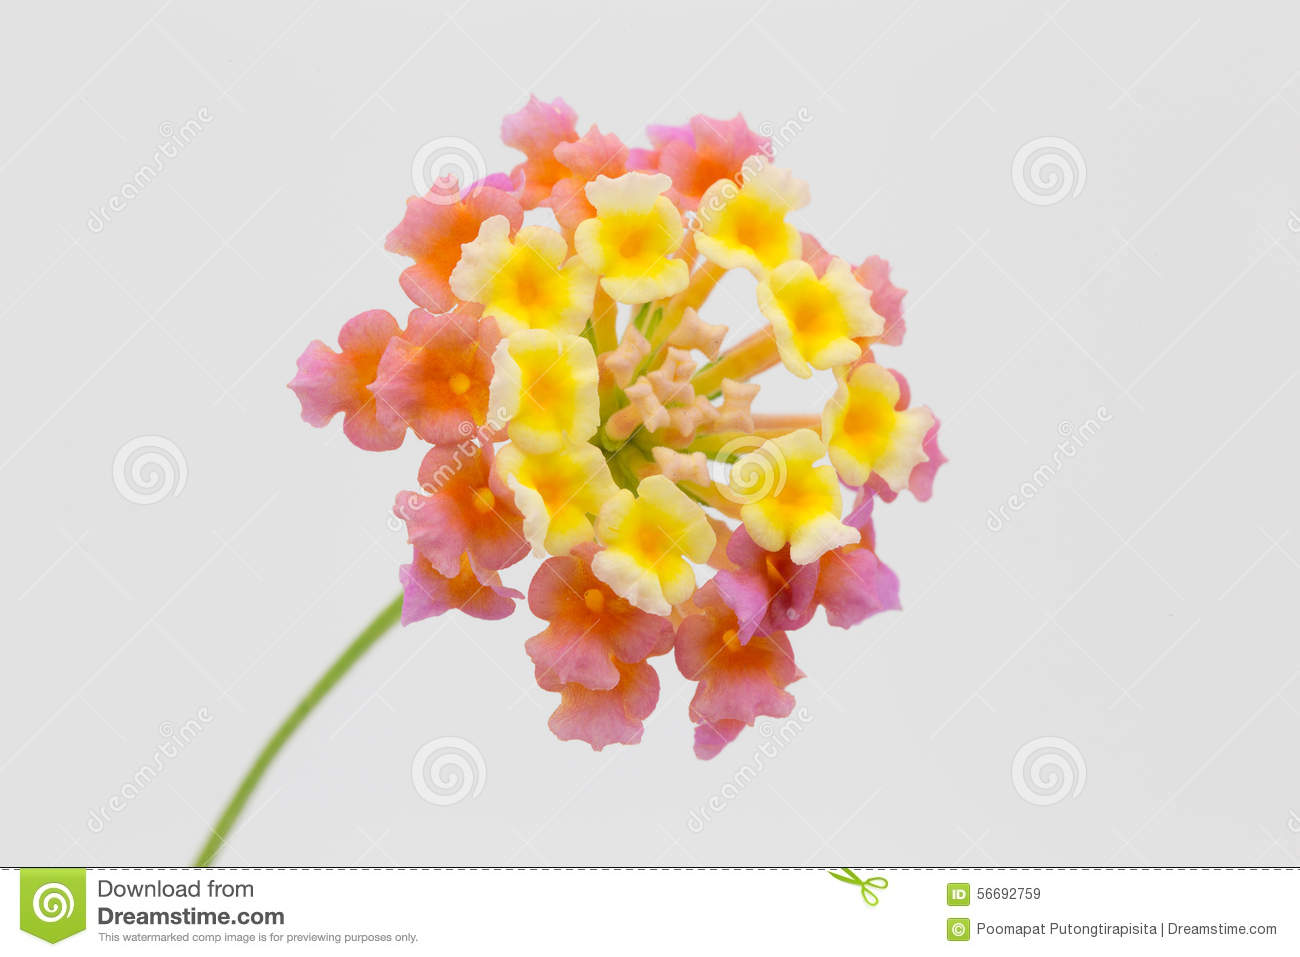 Flowers lantana isolated on a white background stock image image flowers lantana isolated on a white background mightylinksfo